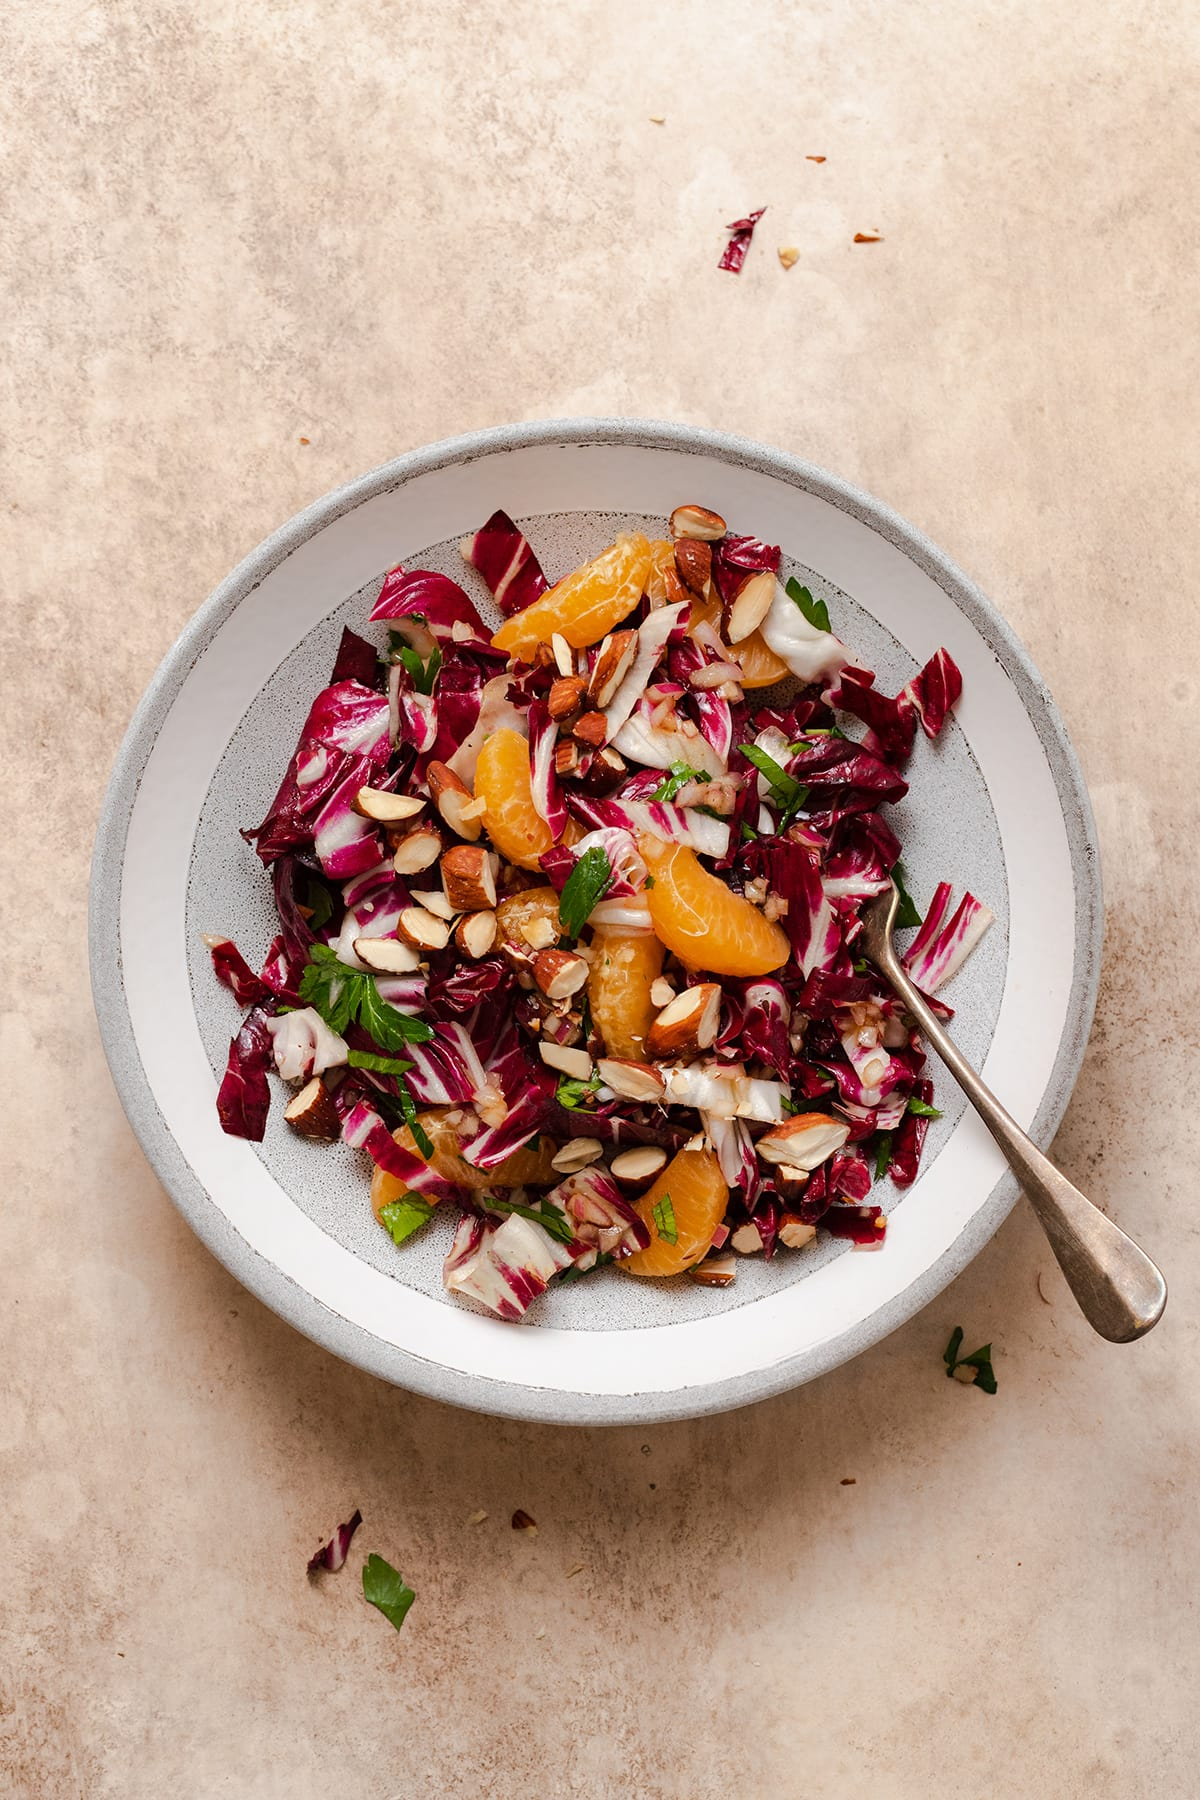 Radicchio Clementine Salad shown on a shallow grey bowl with a white stripe along the edge. Fork resting on the right side of the bowl in the salad.